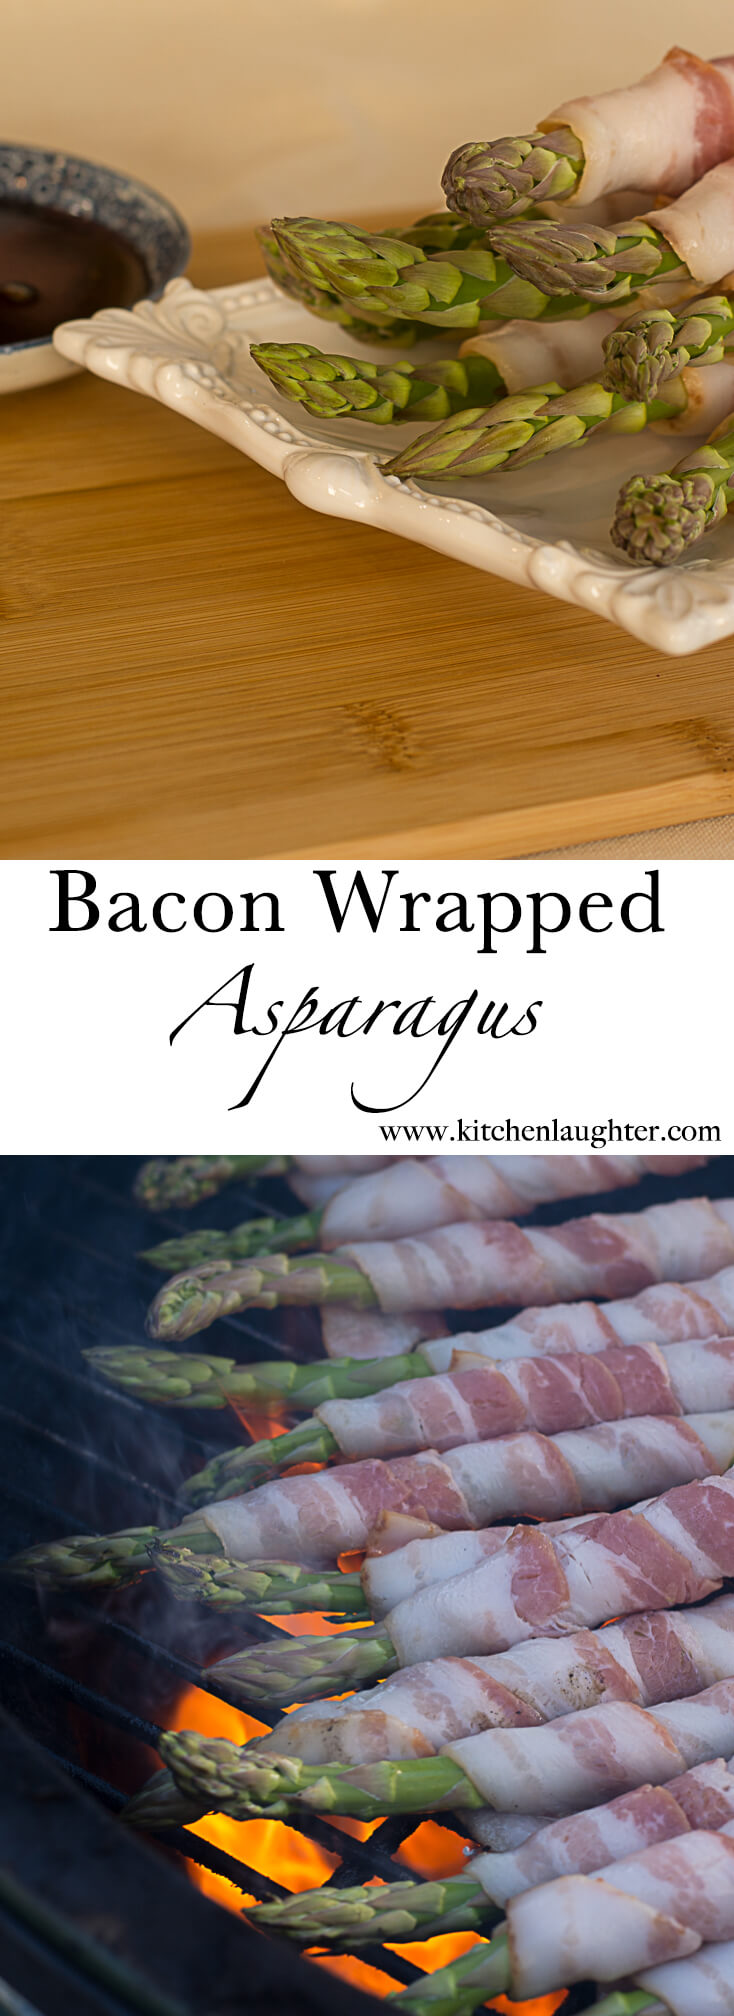 Grilled Bacon Wrapped Asparagus #grill #BGE #BigGreenEgg #Bacon #Asparagus